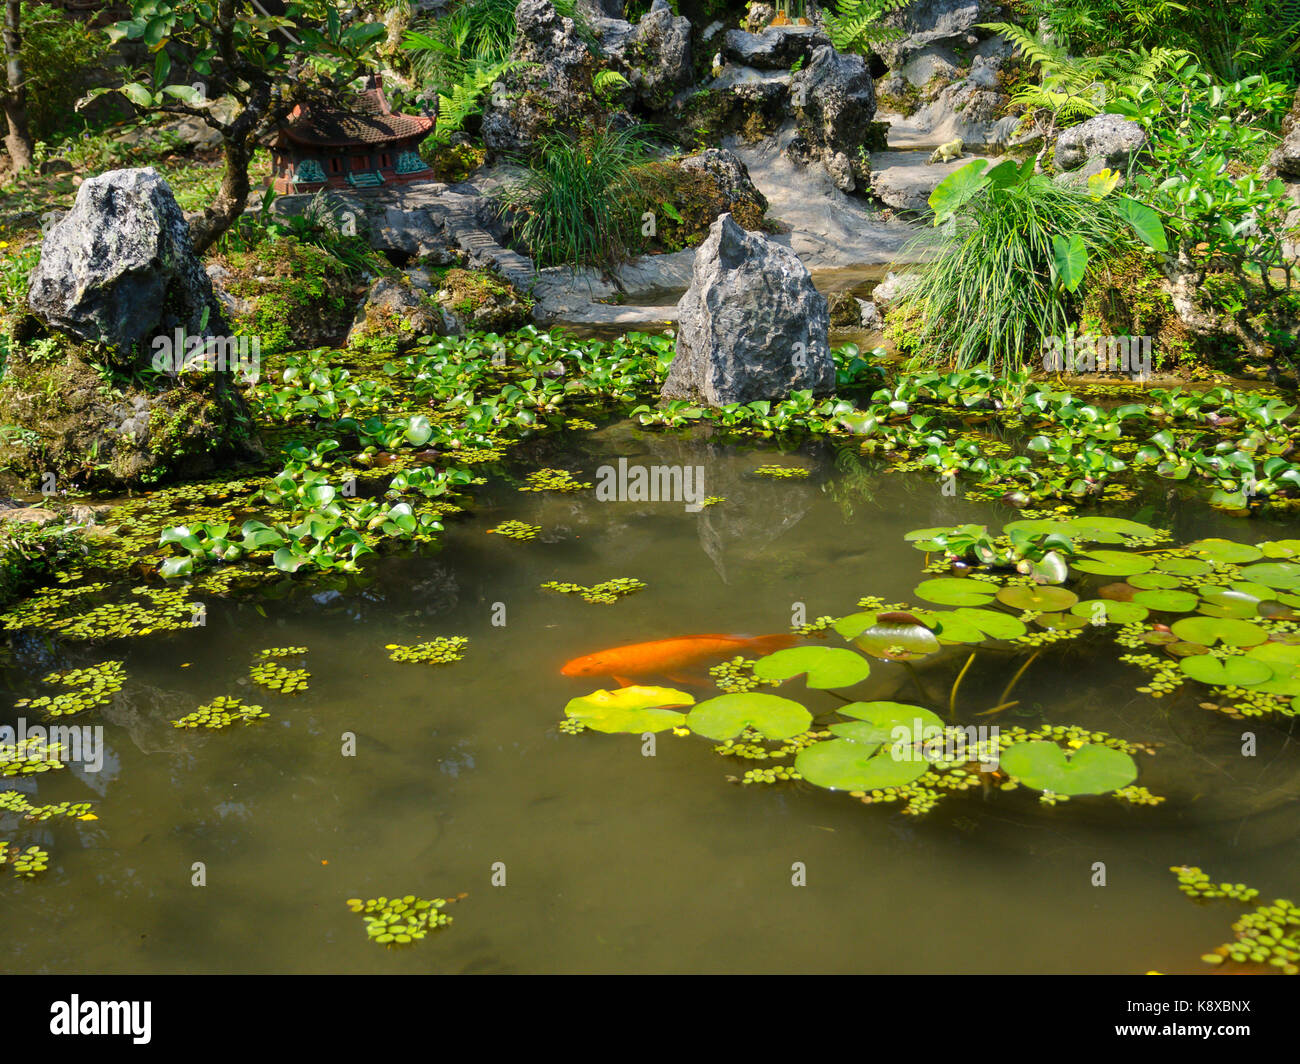 Overstocked stock photos overstocked stock images alamy for Artificial koi fish for ponds